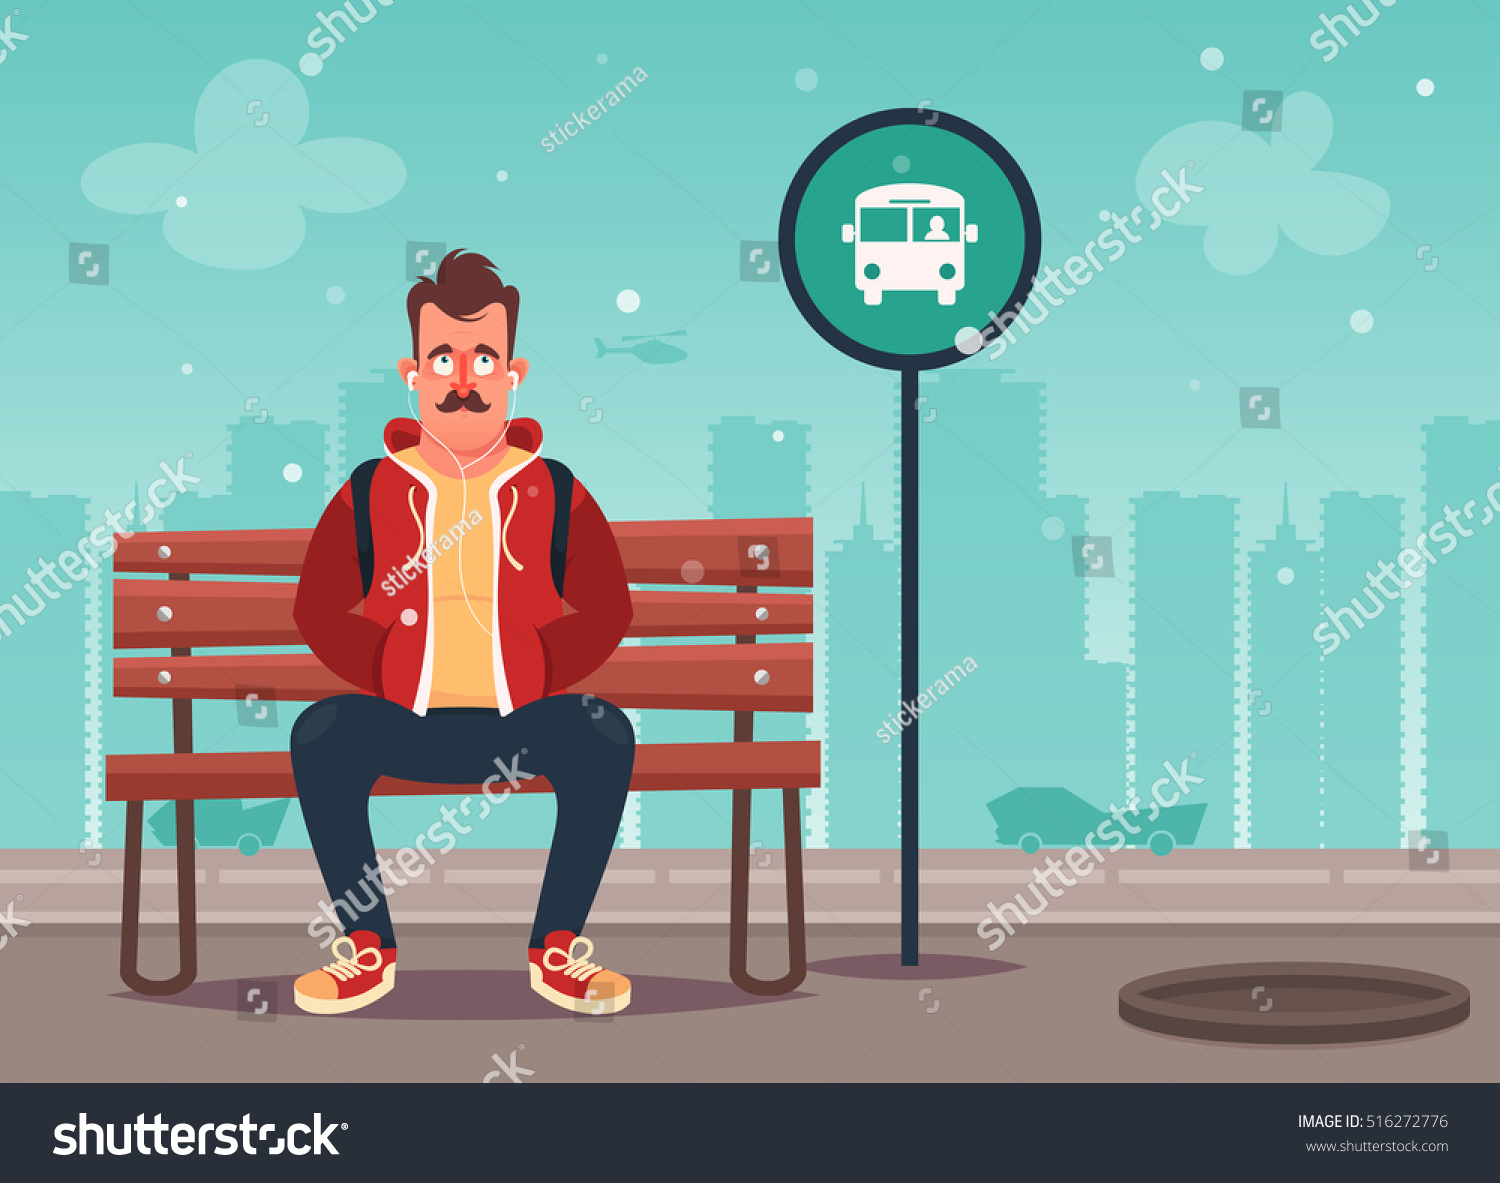 Funny Cartoon Character Cool Hipster Sitting Stock Vector ...